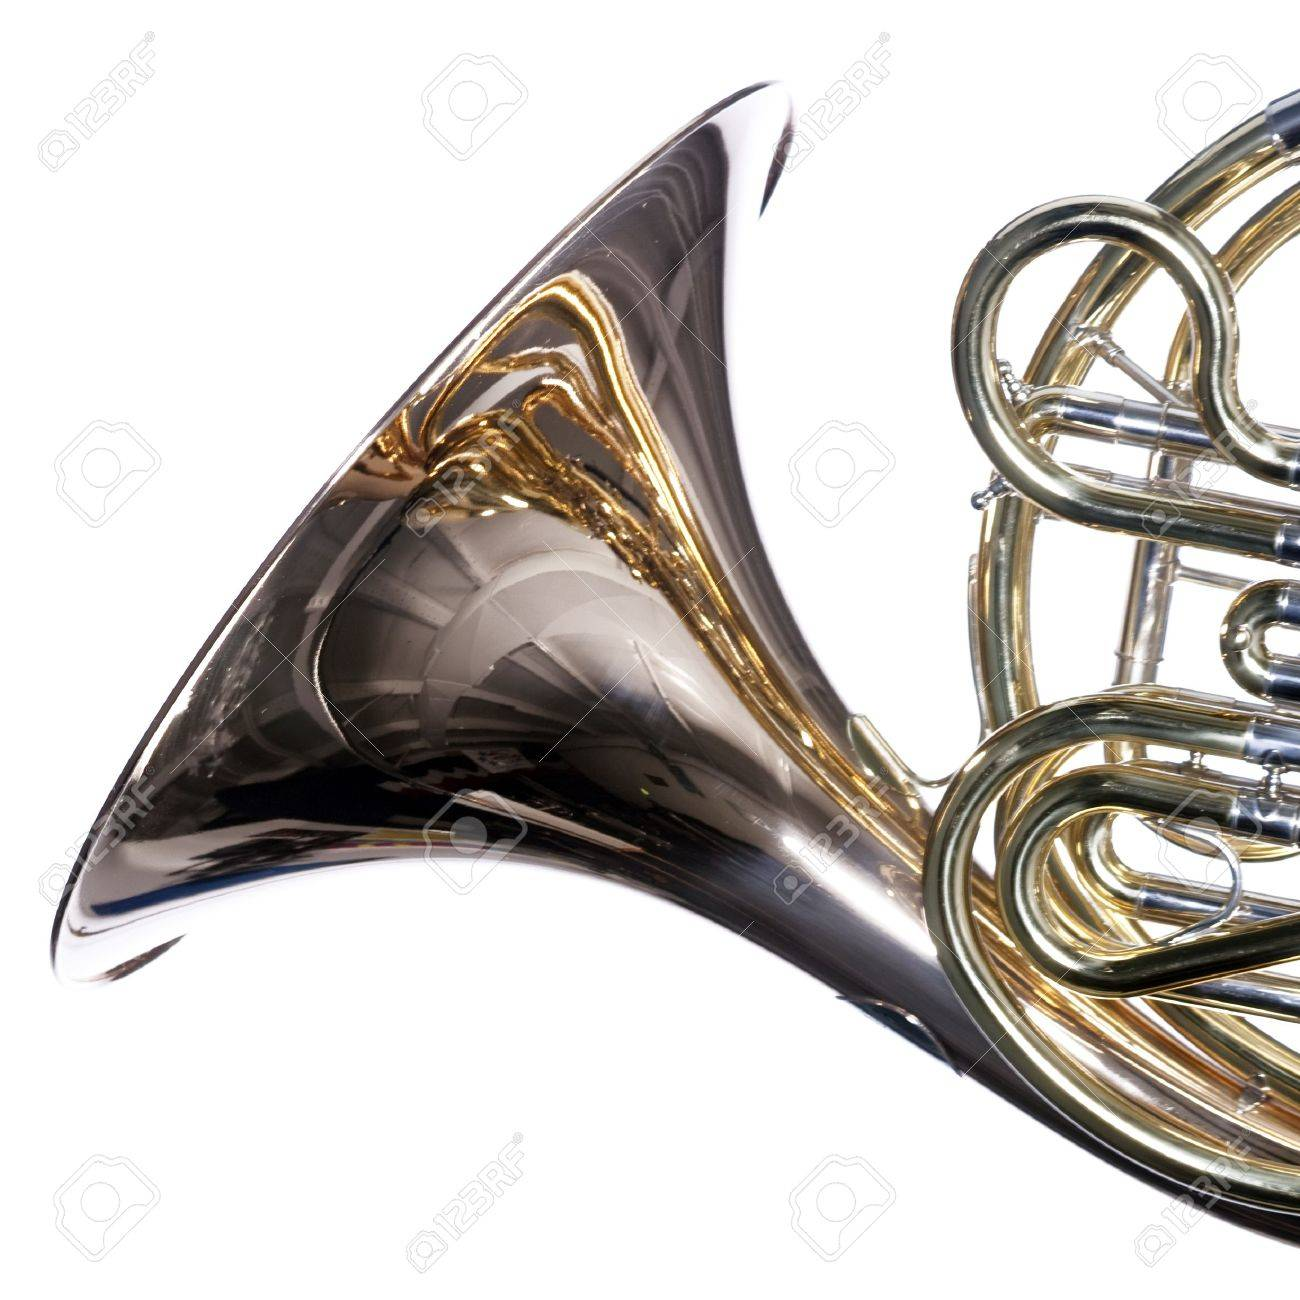 A gold brass French horn close up isolated against a white background  in the square format. Stock Photo - 5193609